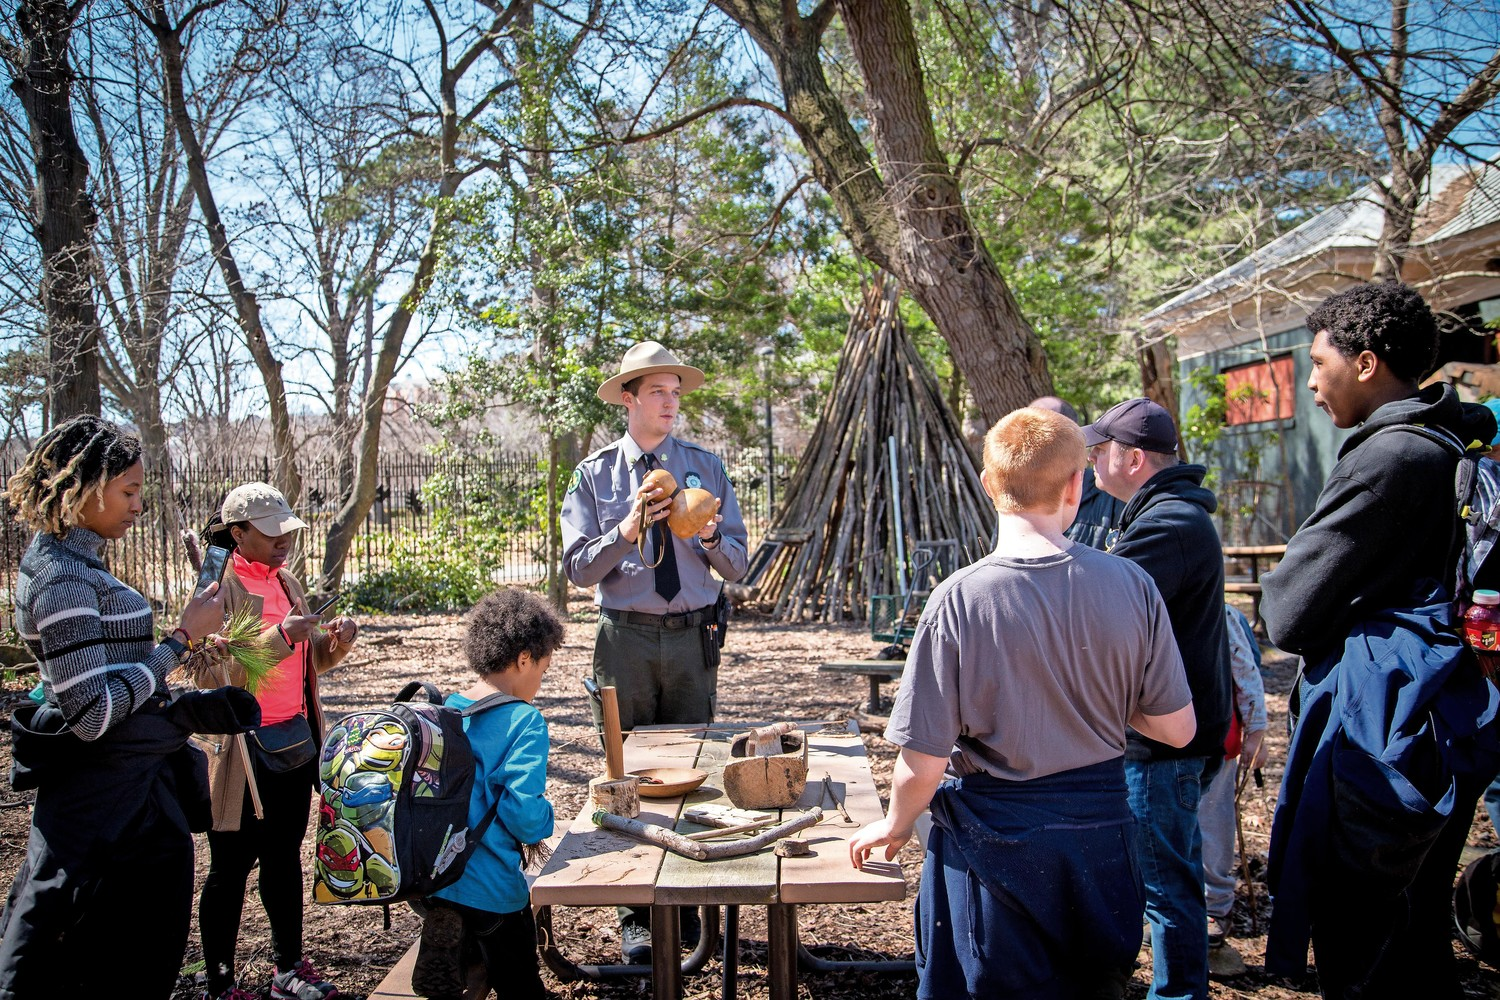 Ian Cleary, an urban park ranger, shows various tools to use in nature in the ?Survival Series? workshop in Van Cortlandt Park.